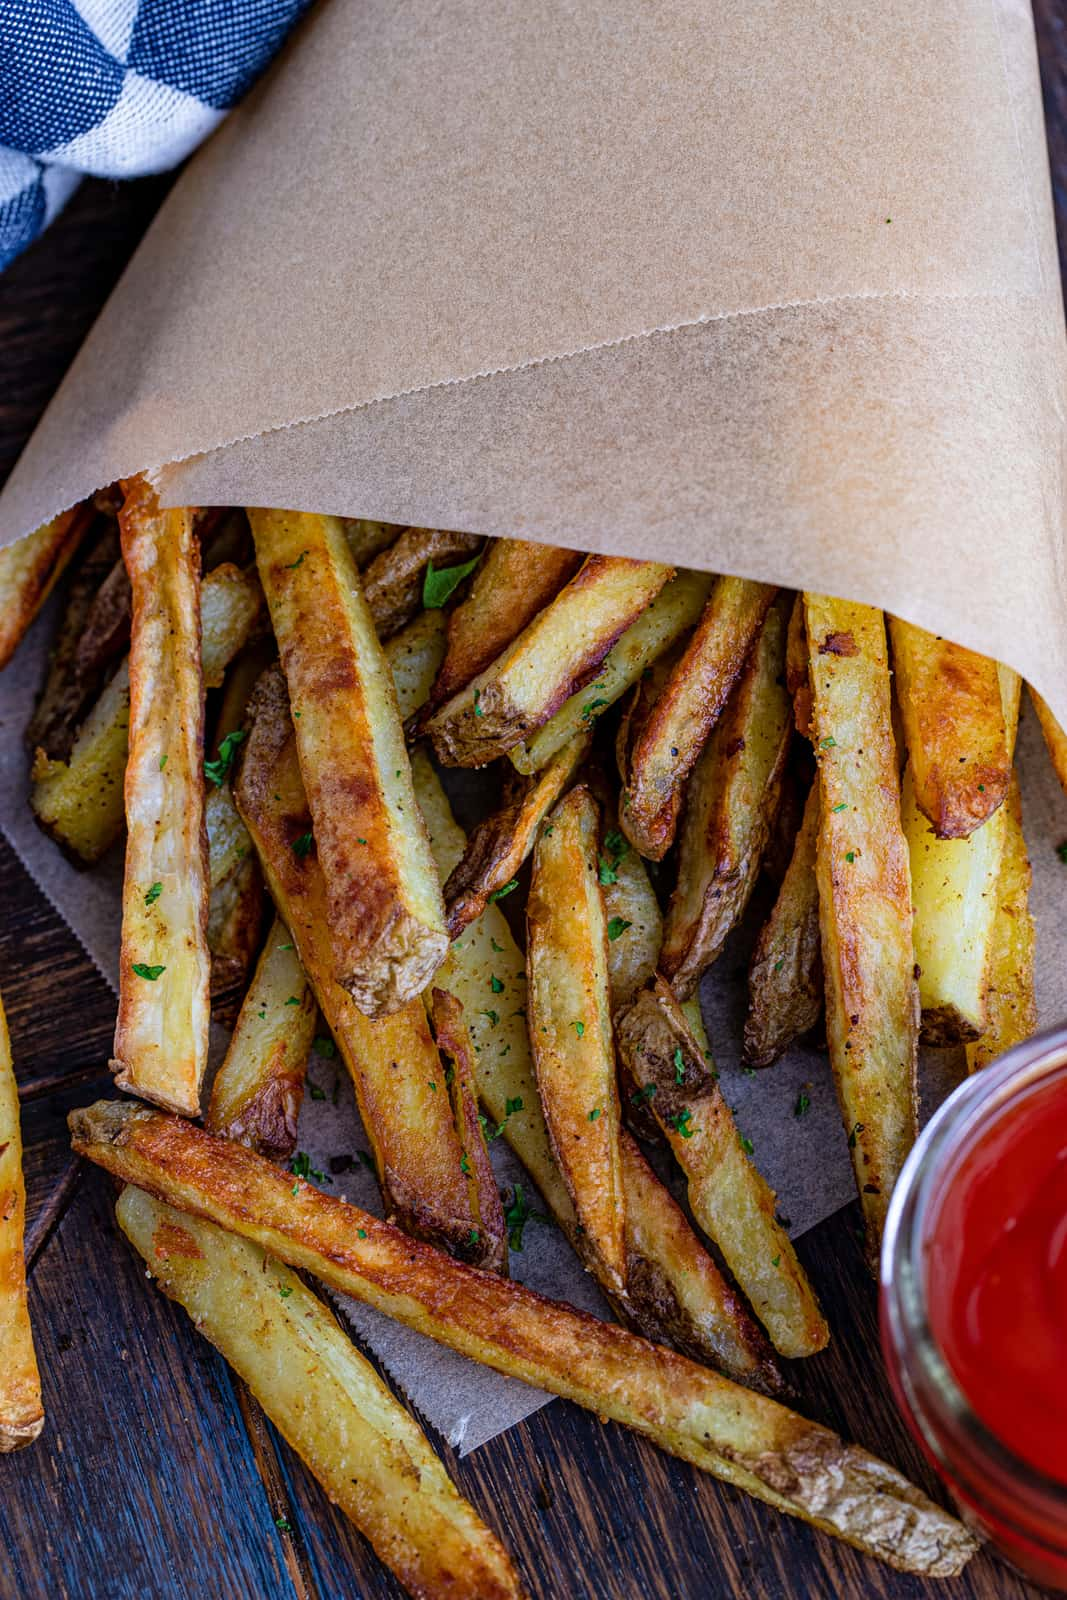 Overhead image of Fries in parchment paper with ketchup